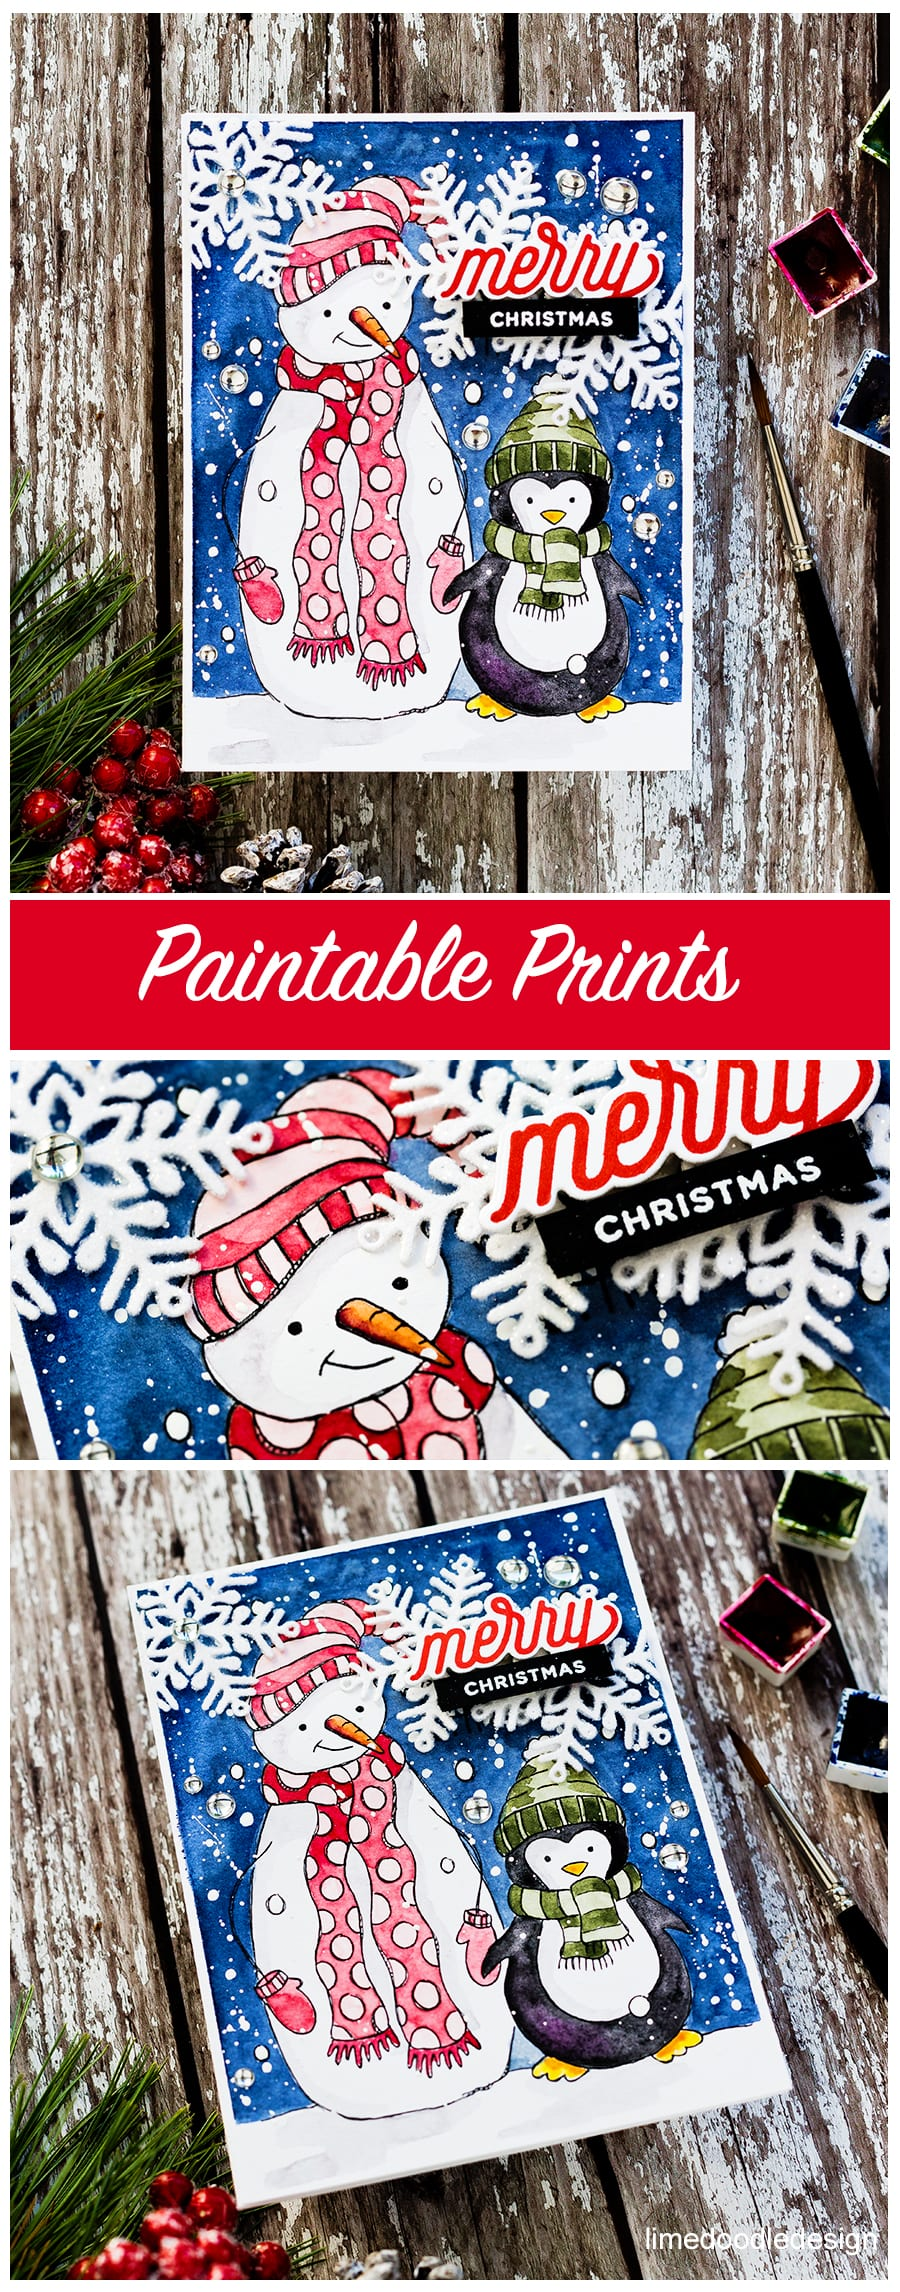 Paintable prints handmade Christmas card by Debby Hughes. Find out more here: https://limedoodledesign.com/2018/10/paintable-prints-perfect-for-quick-holiday-cards/